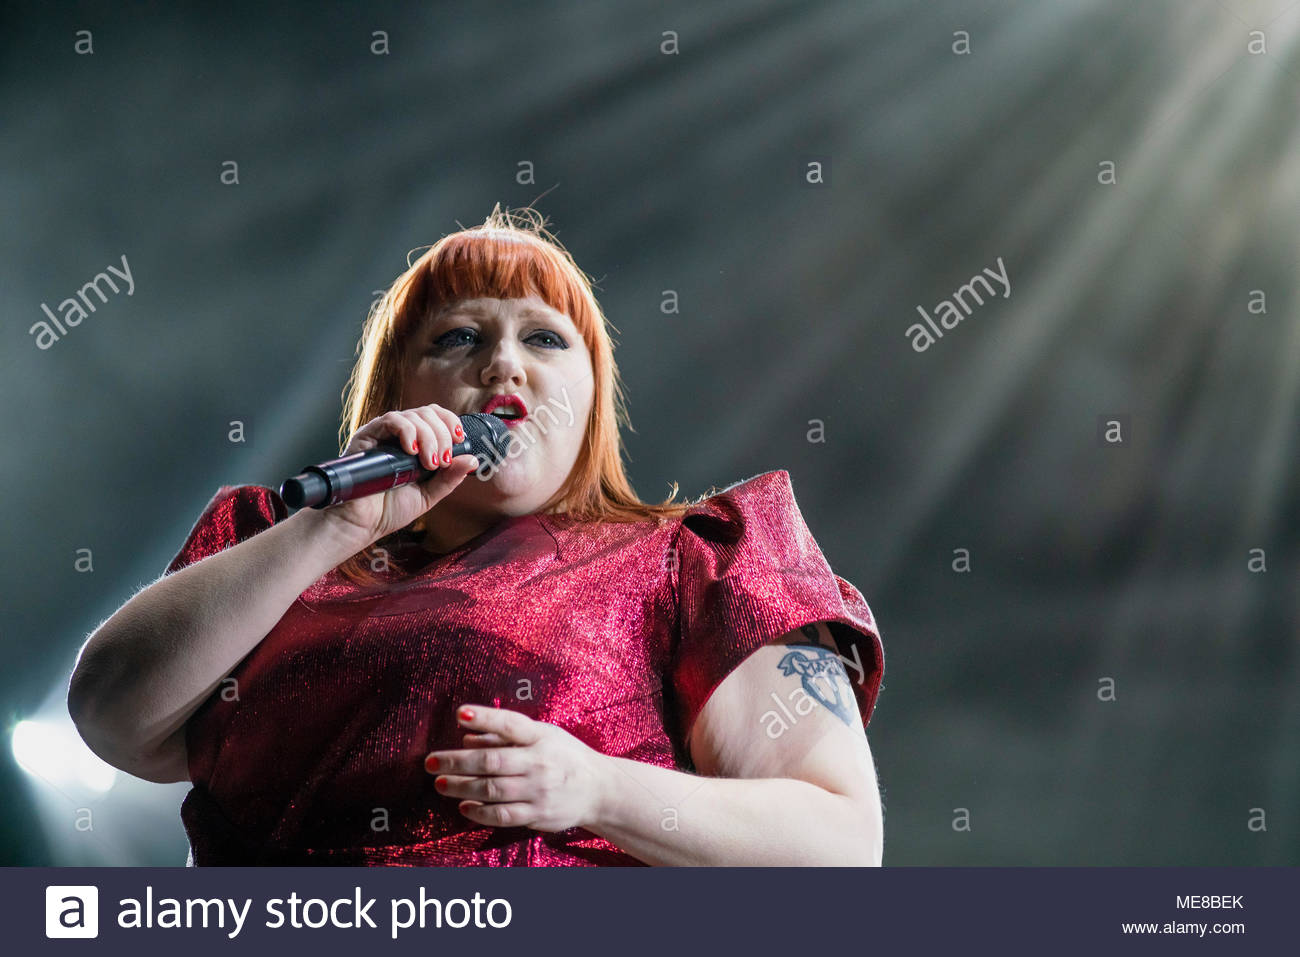 Chamonix, France, 21 April 2018. Beth Ditto performing live at the first edition of MUSILAC Mont-Blanc music festival in Chamonix (France) - 21 April 2018 Credit: Olivier Parent/Alamy Live News Stock Photo